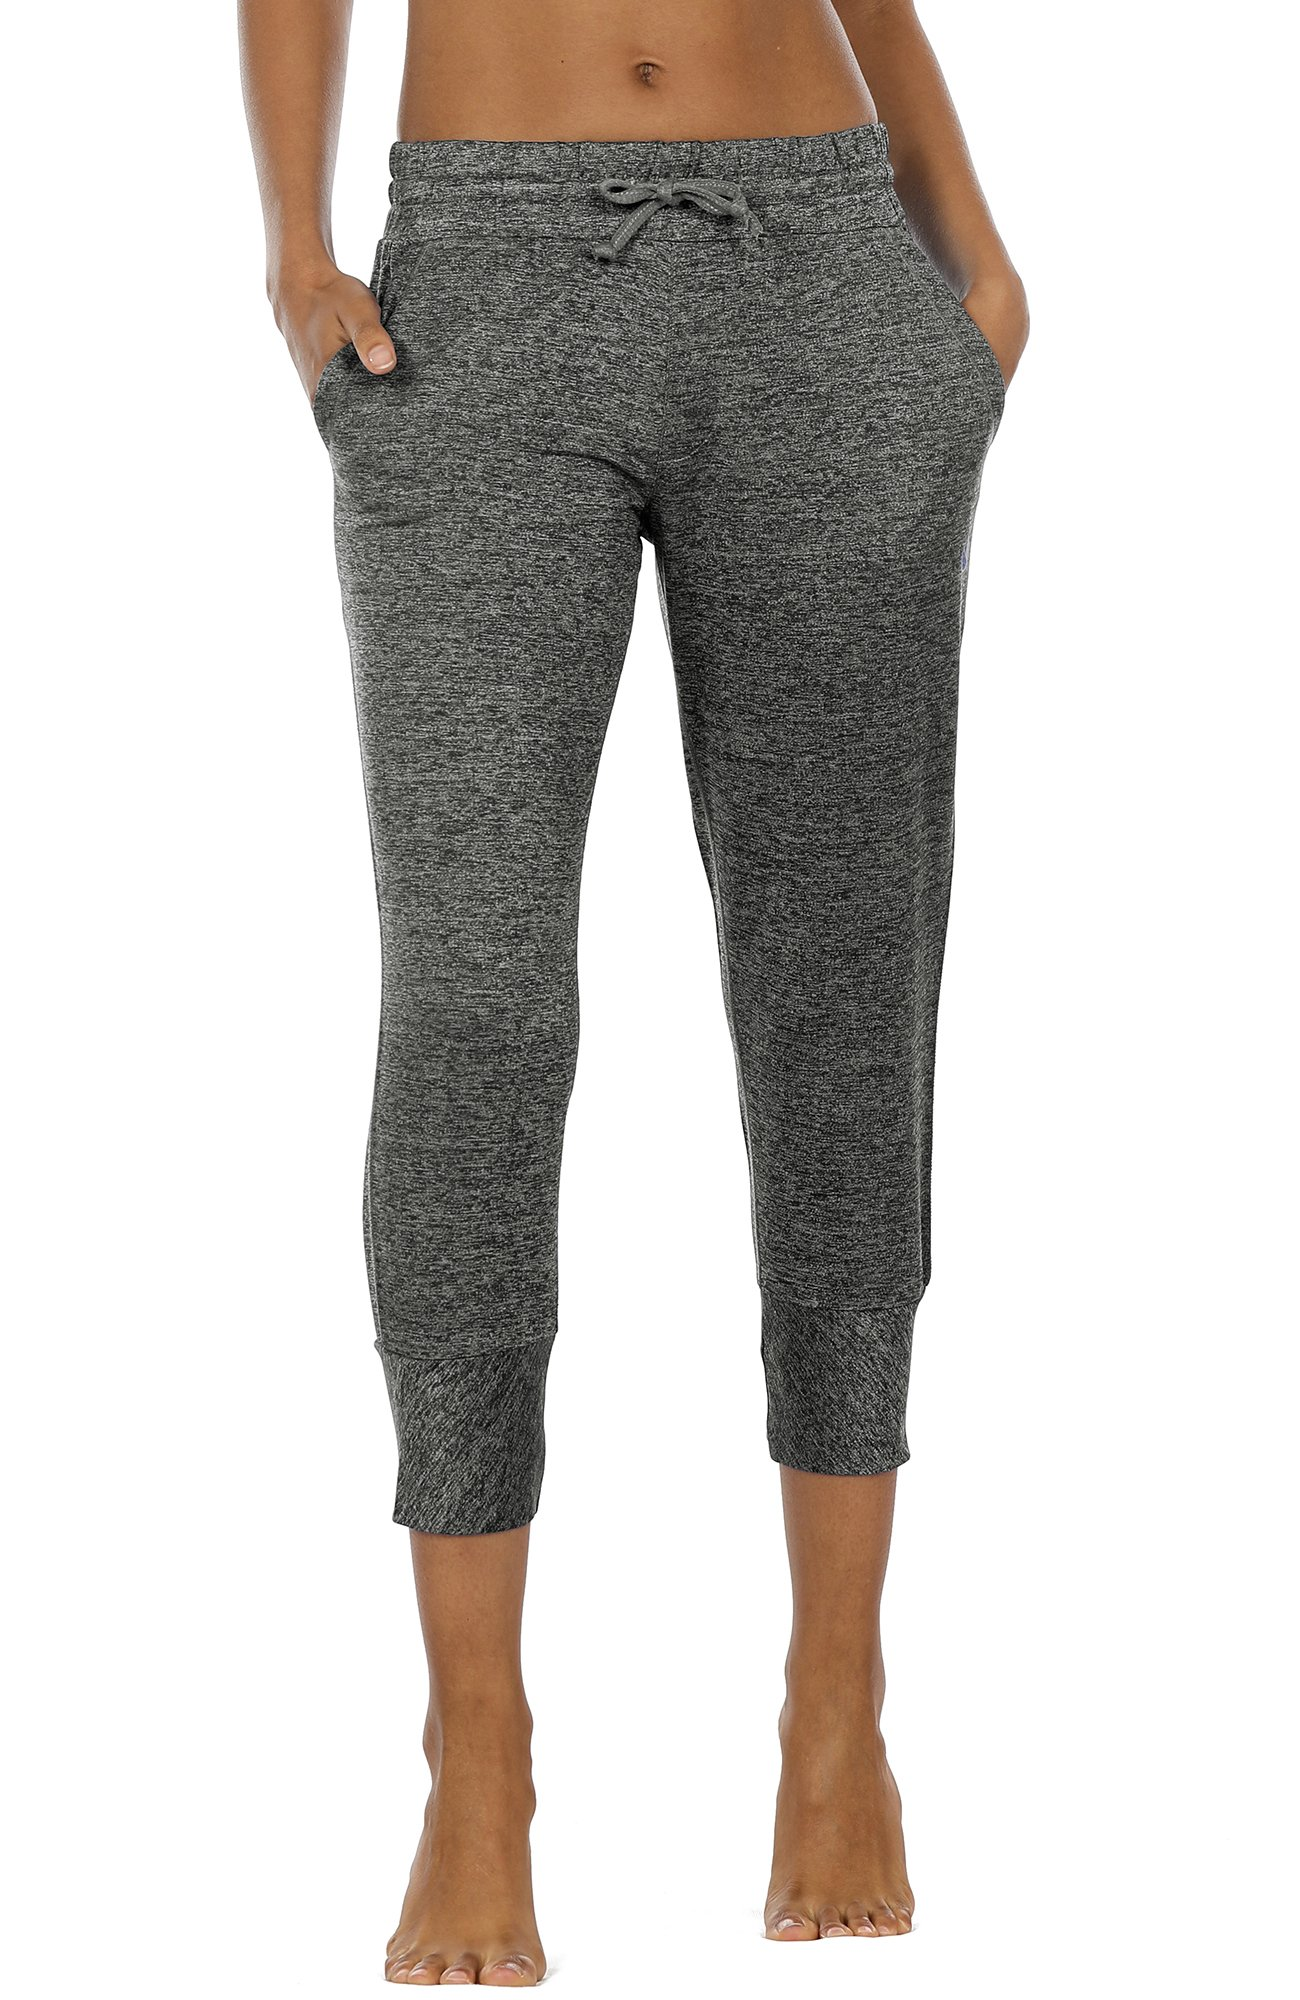 icyzone Women's Active Joggers Sweatpants - Athletic Yoga Lounge Capris with Pockets(M, Charcoal)